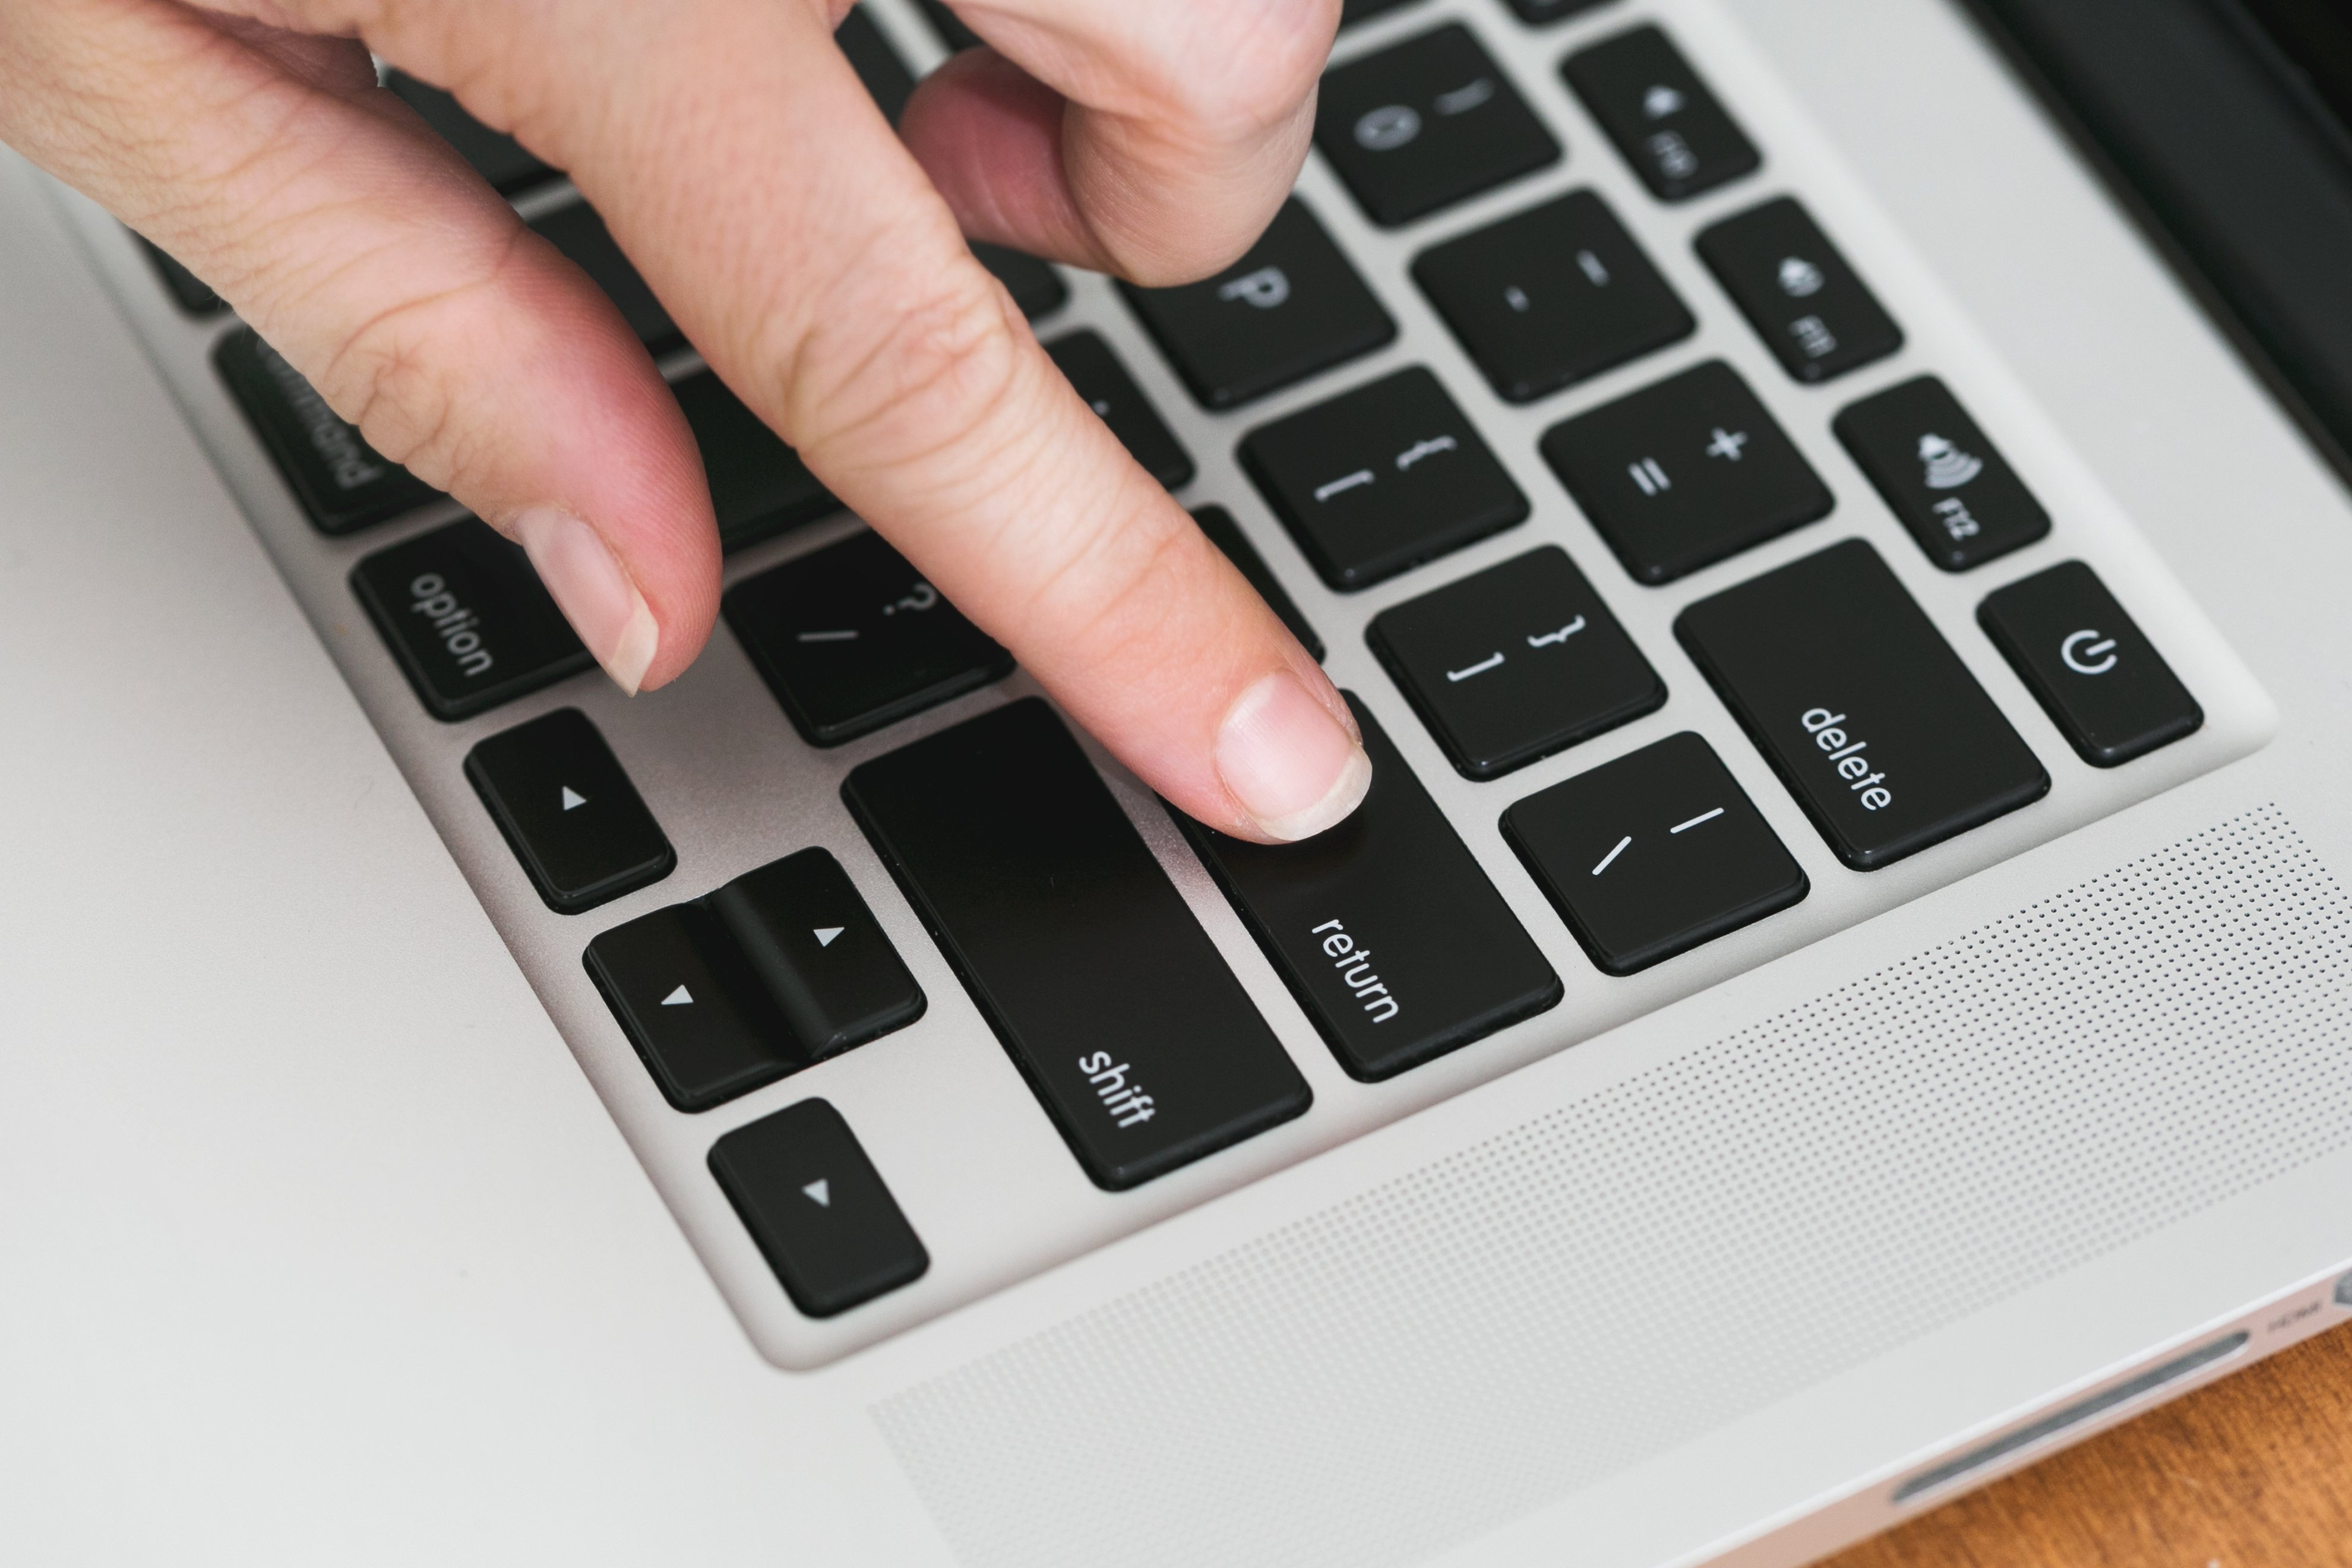 The basics—switching from Mac to Windows